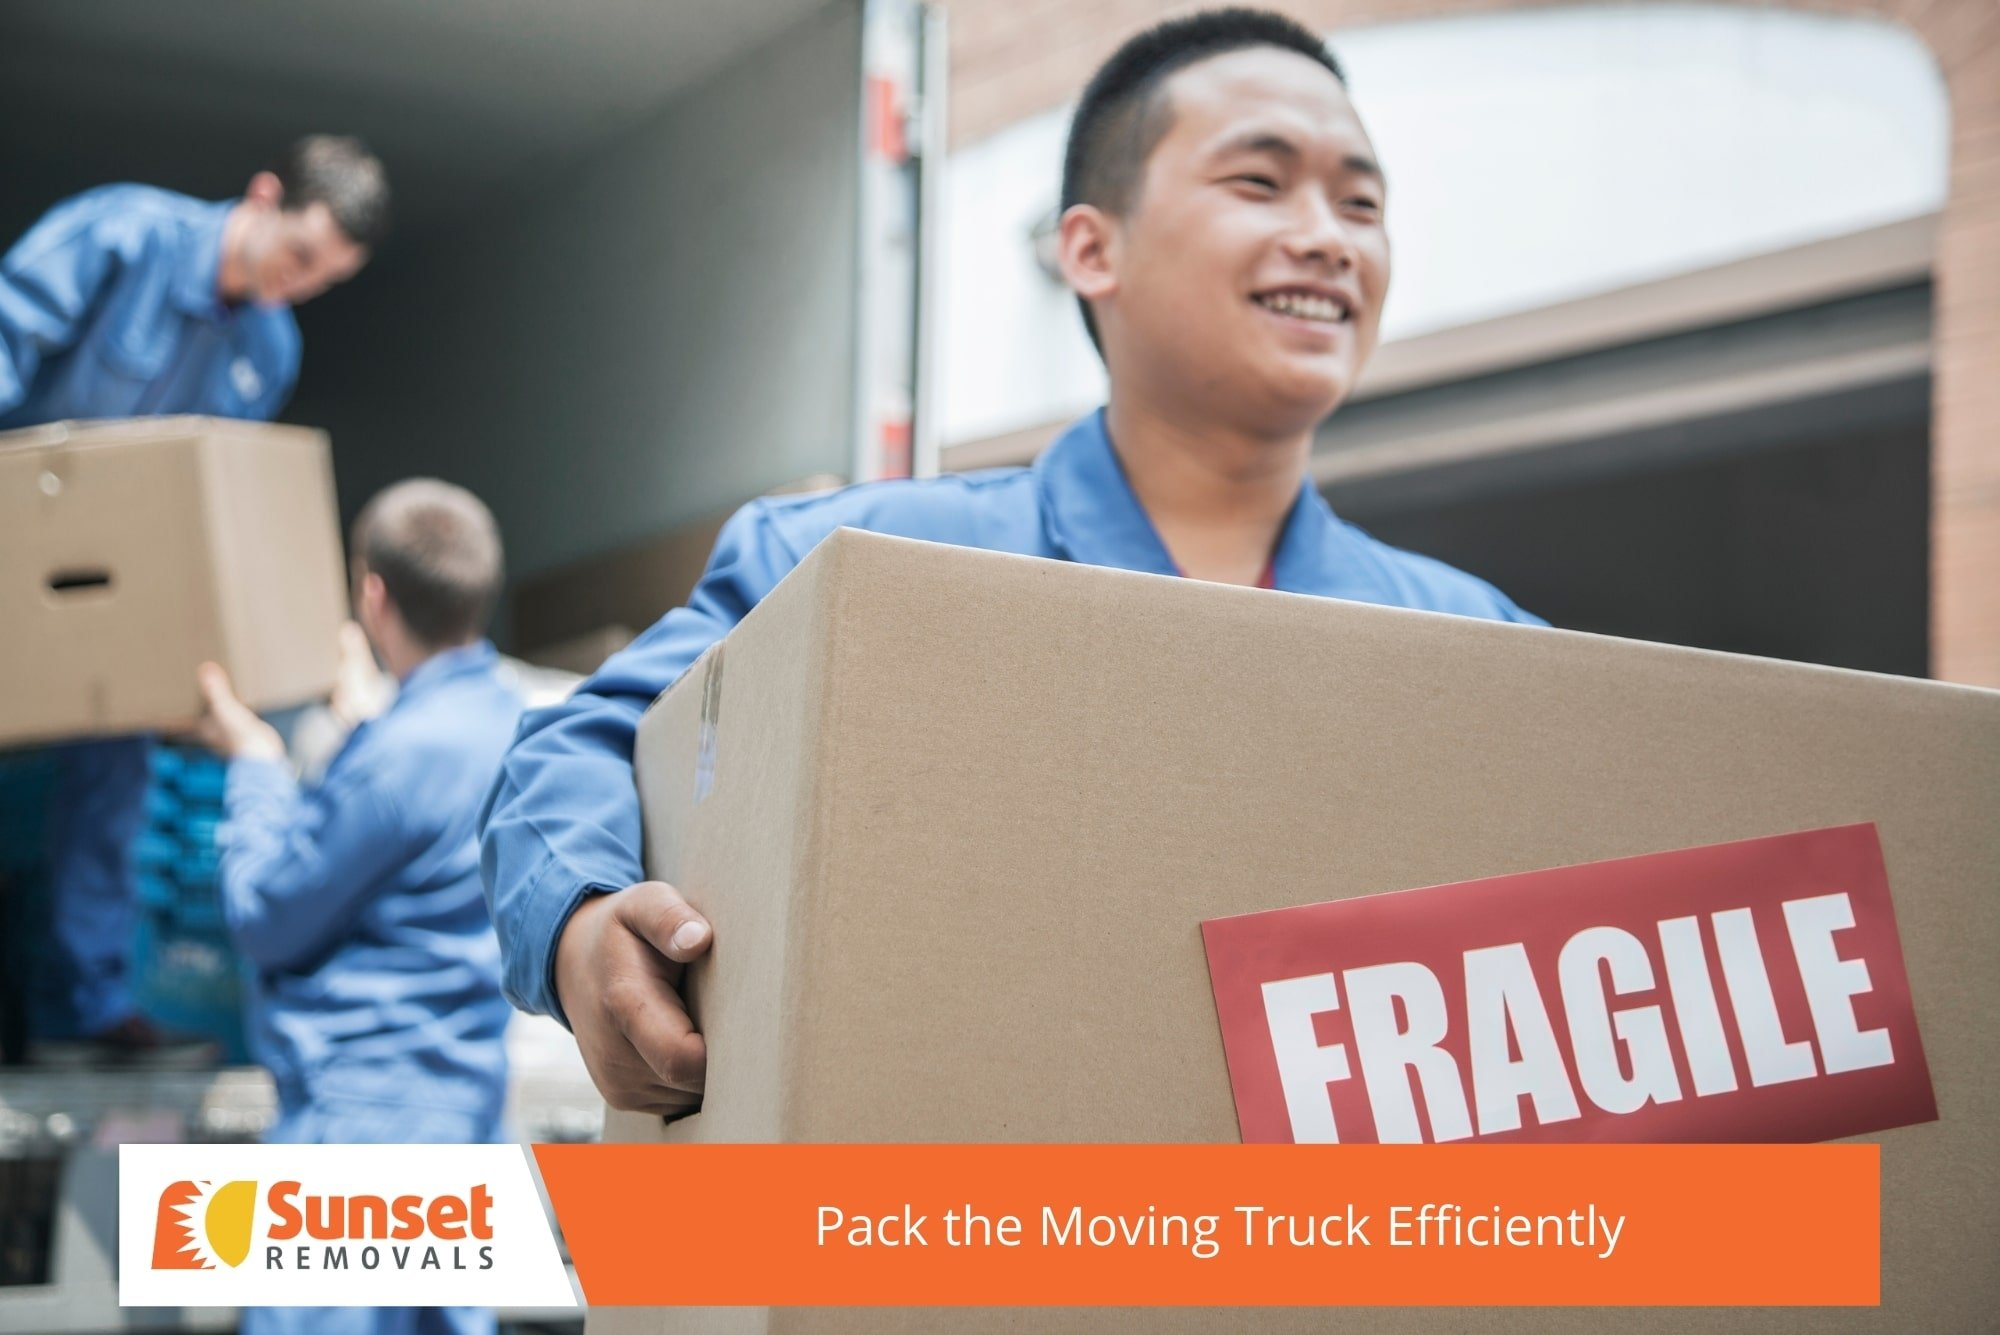 Pack the Moving Truck Efficiently